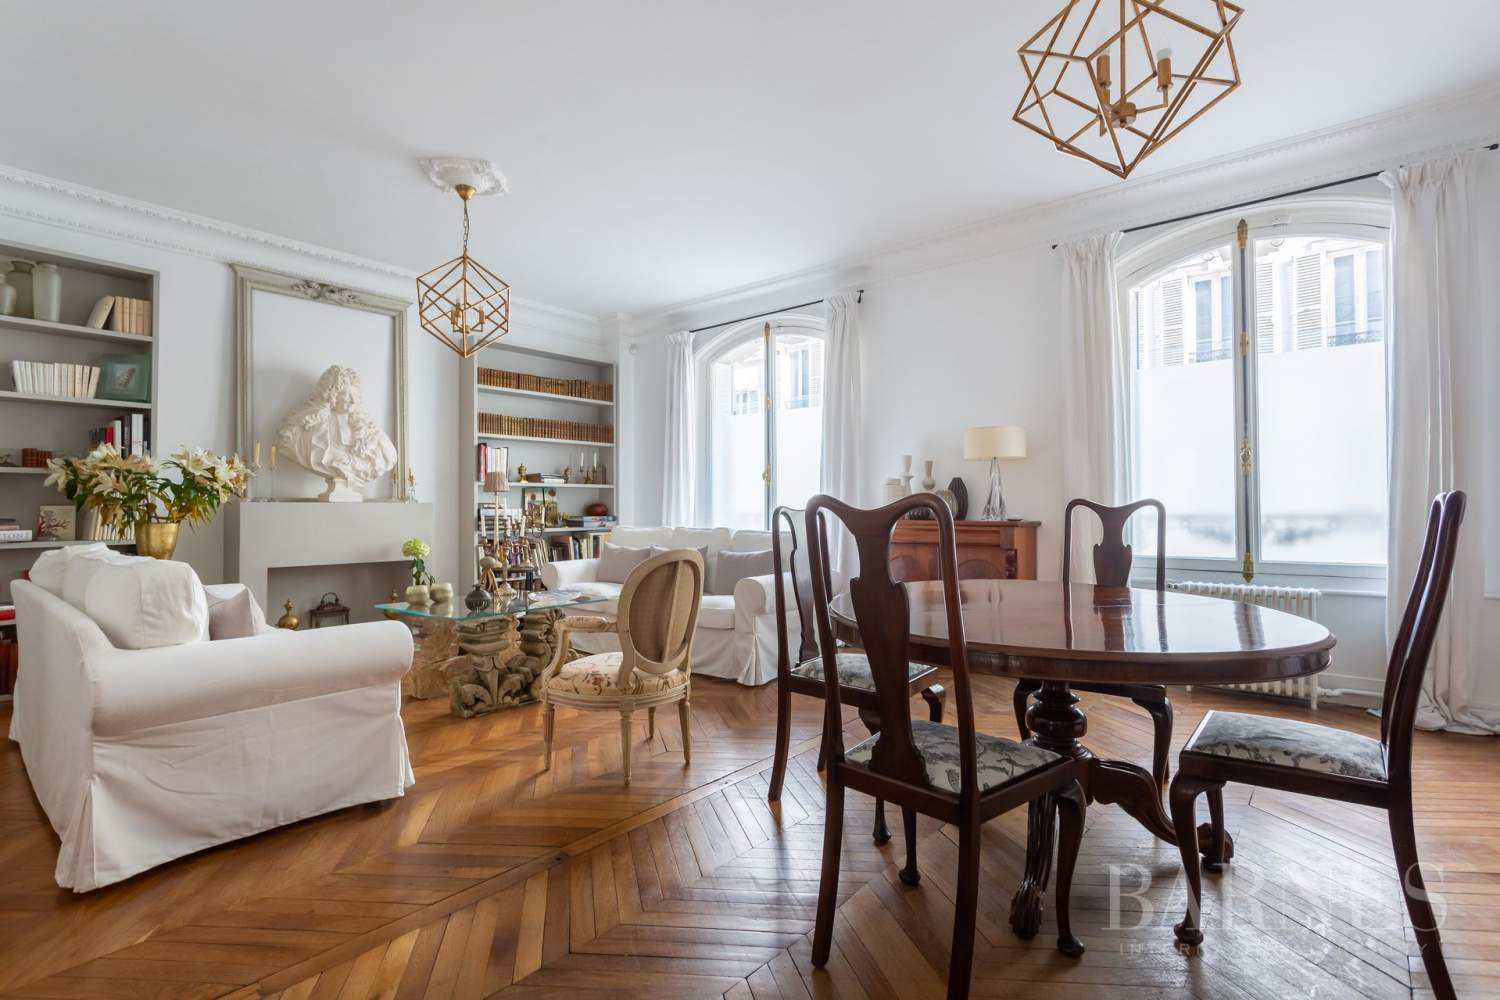 Sole Agent - Neuilly Sablons - Beautiful period parquet, mouldings, fireplace - garden picture 5